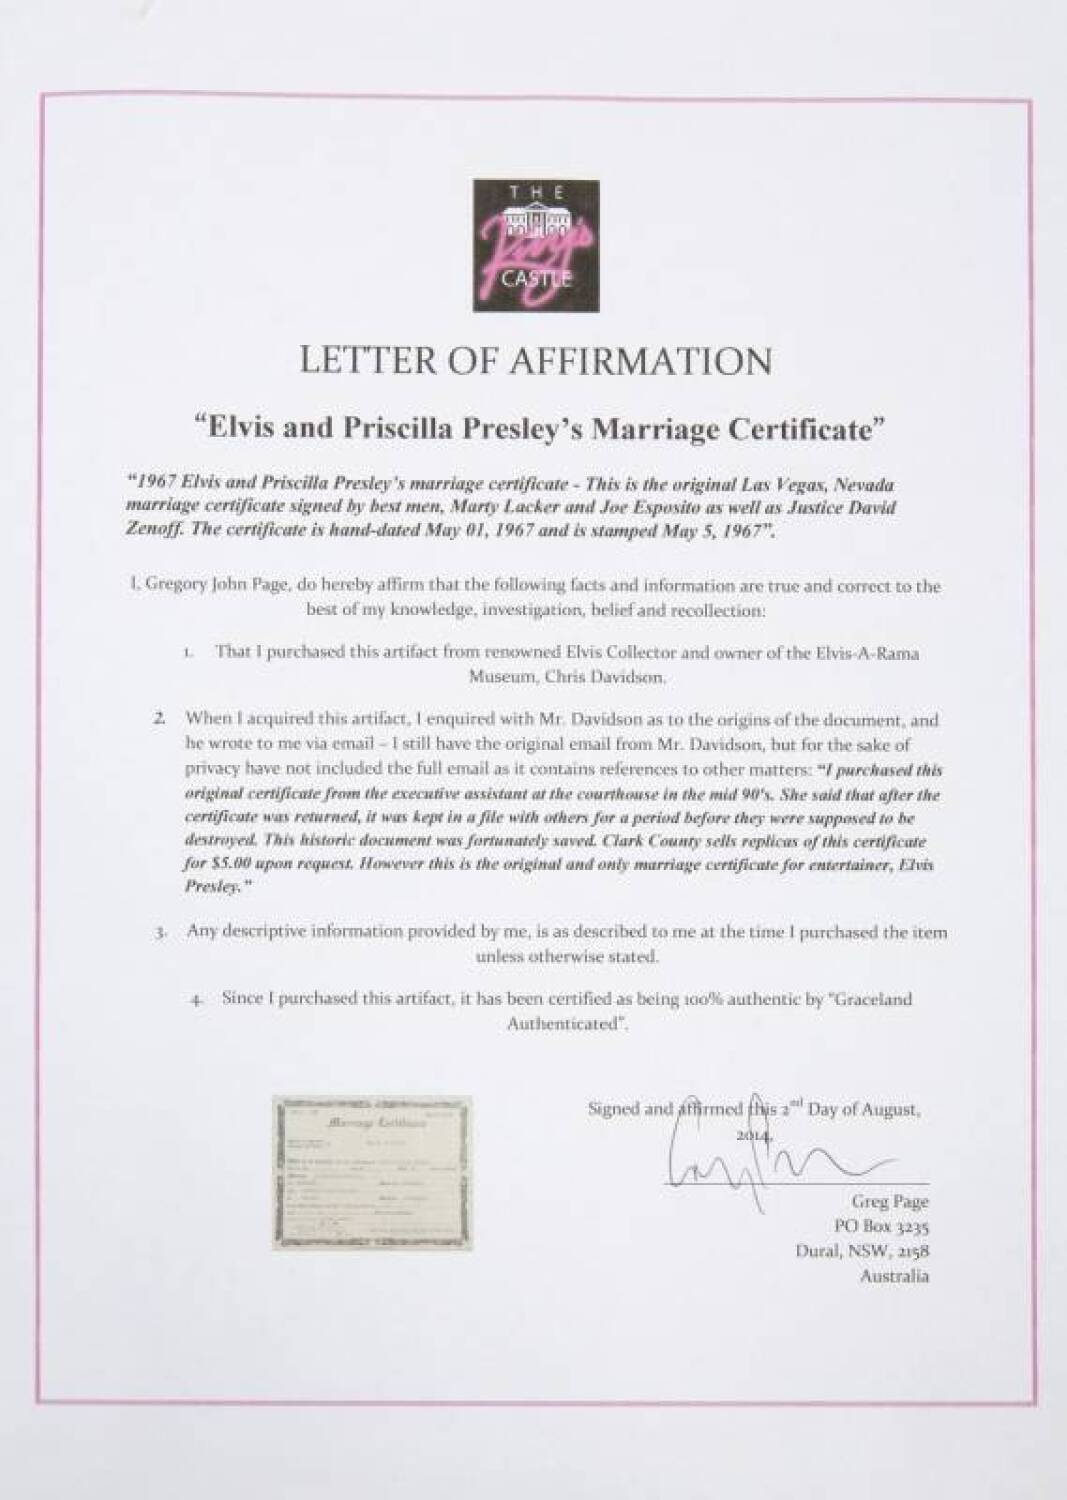 1967 Elvis And Priscilla Presley'S Marriage Certificate